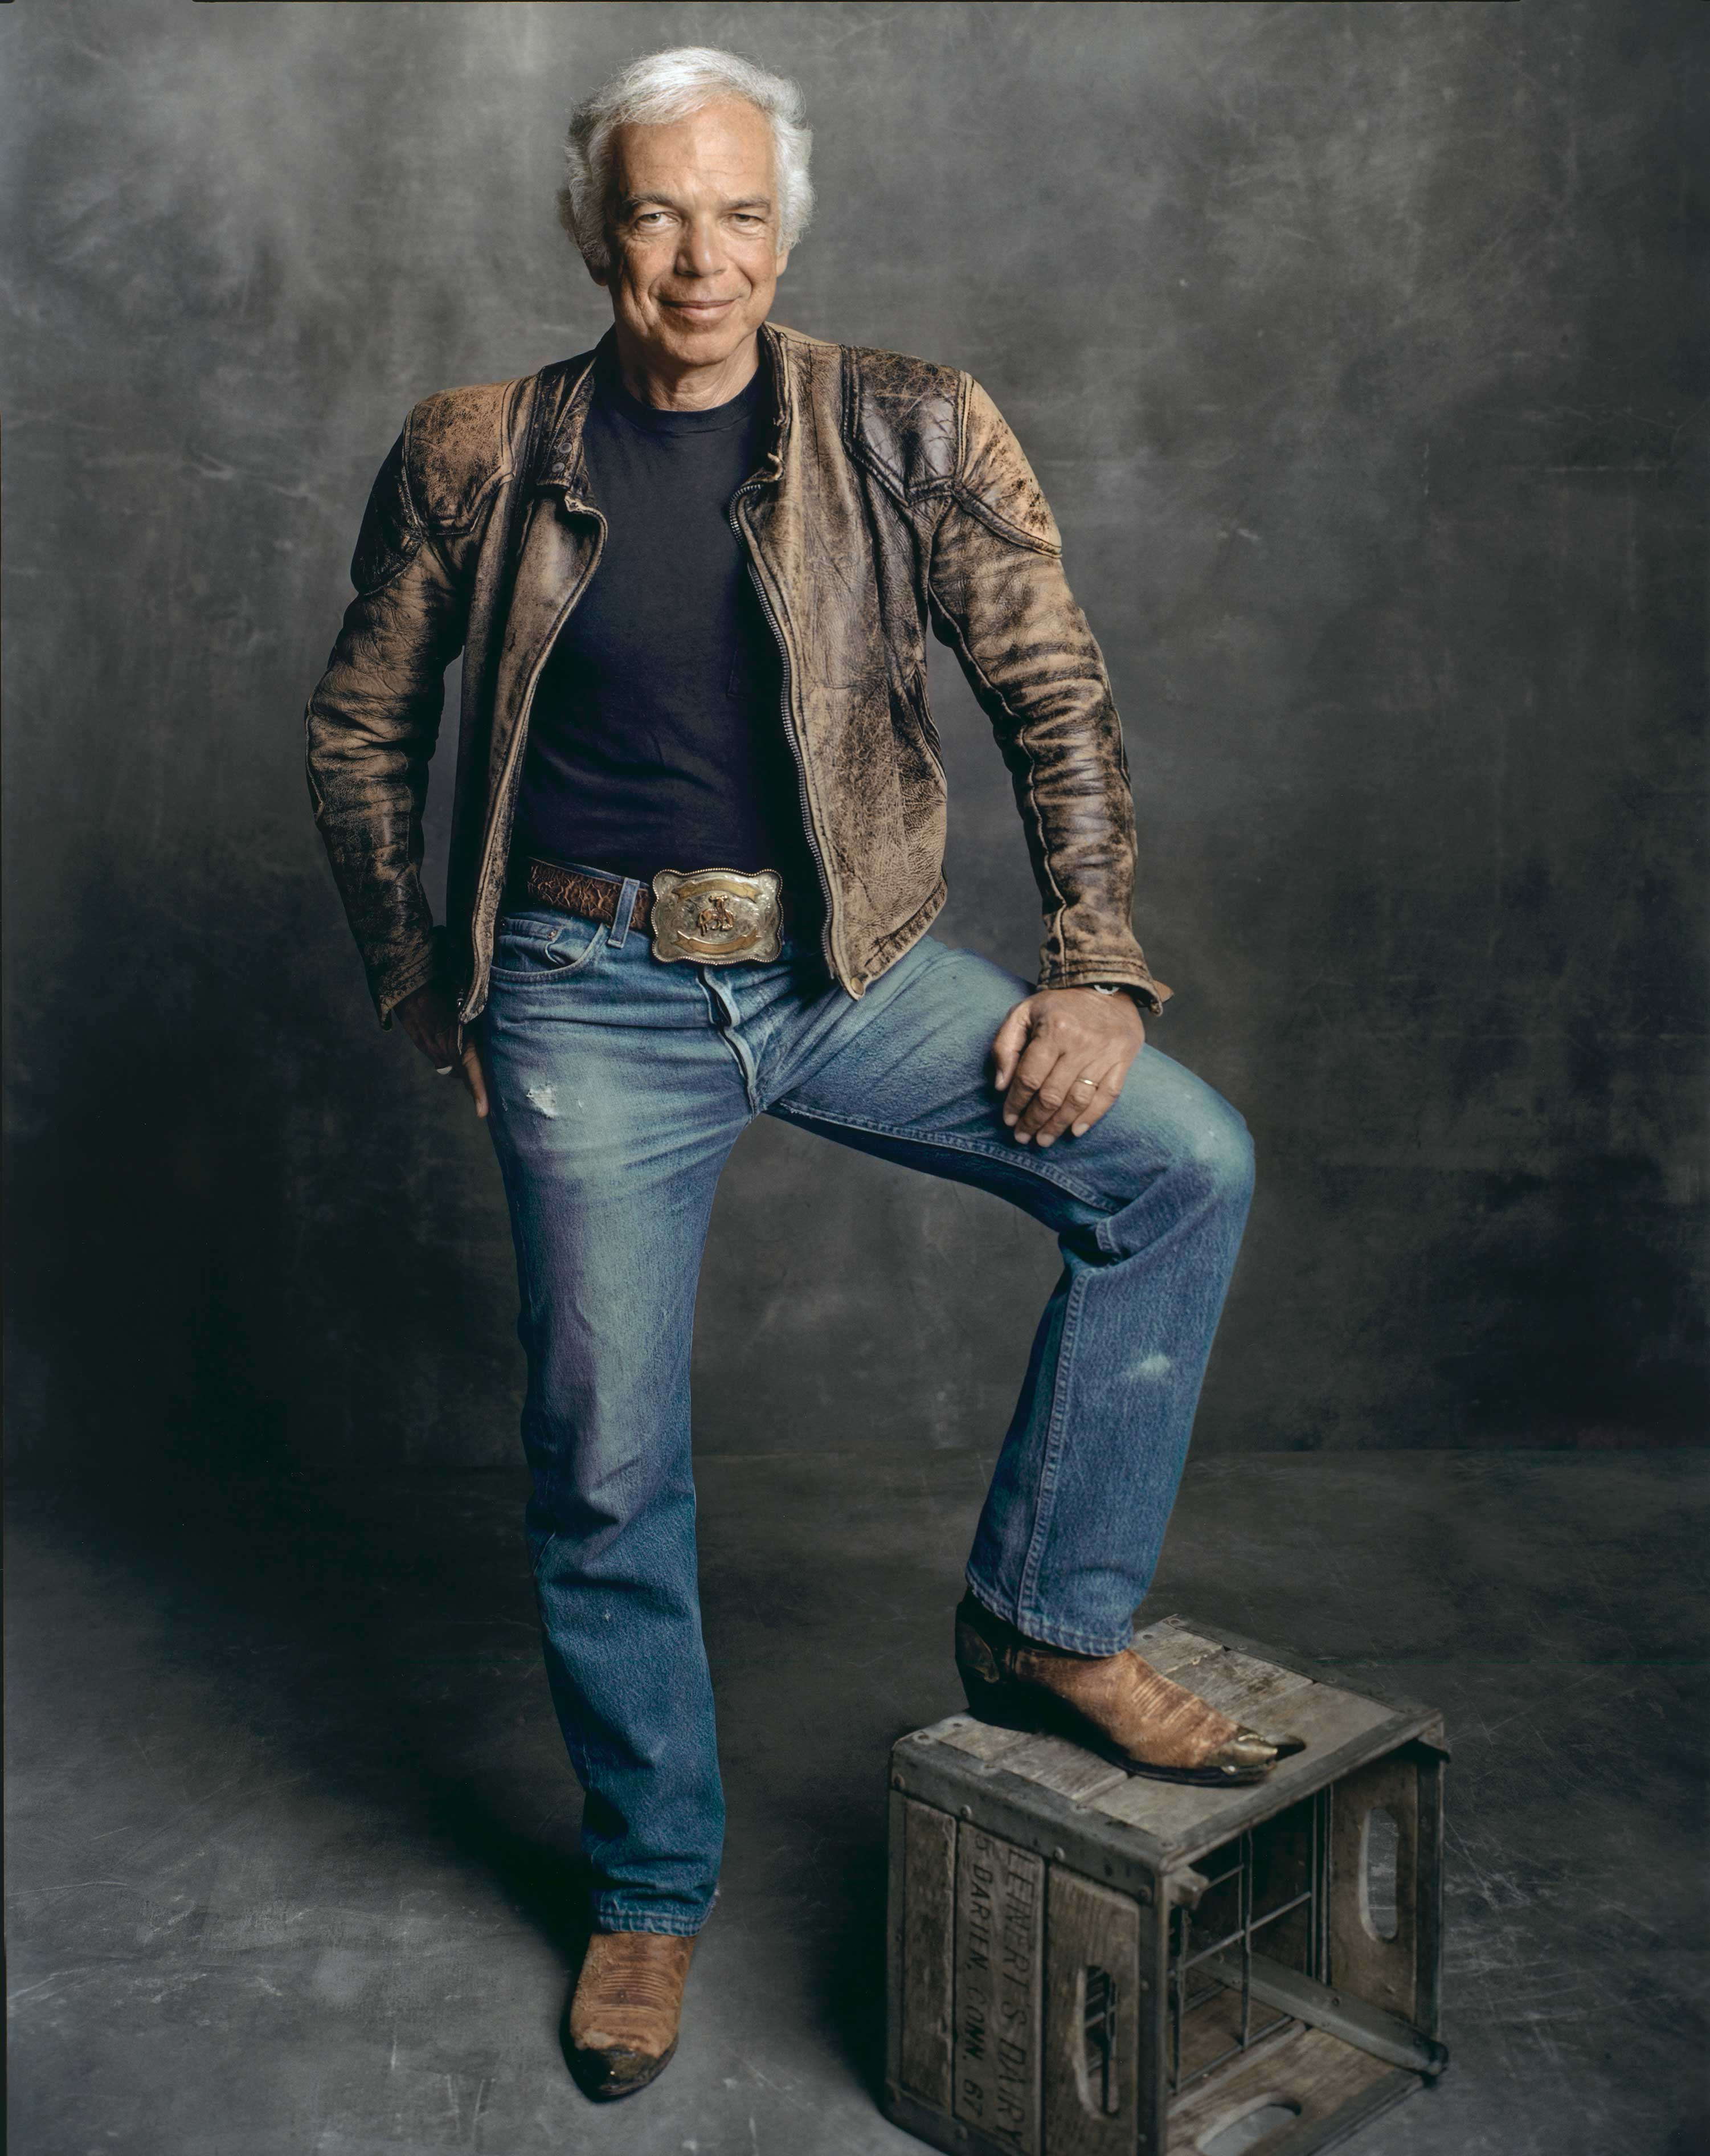 Photograph of a man standing on a wooden crate and wearing a leather jacket